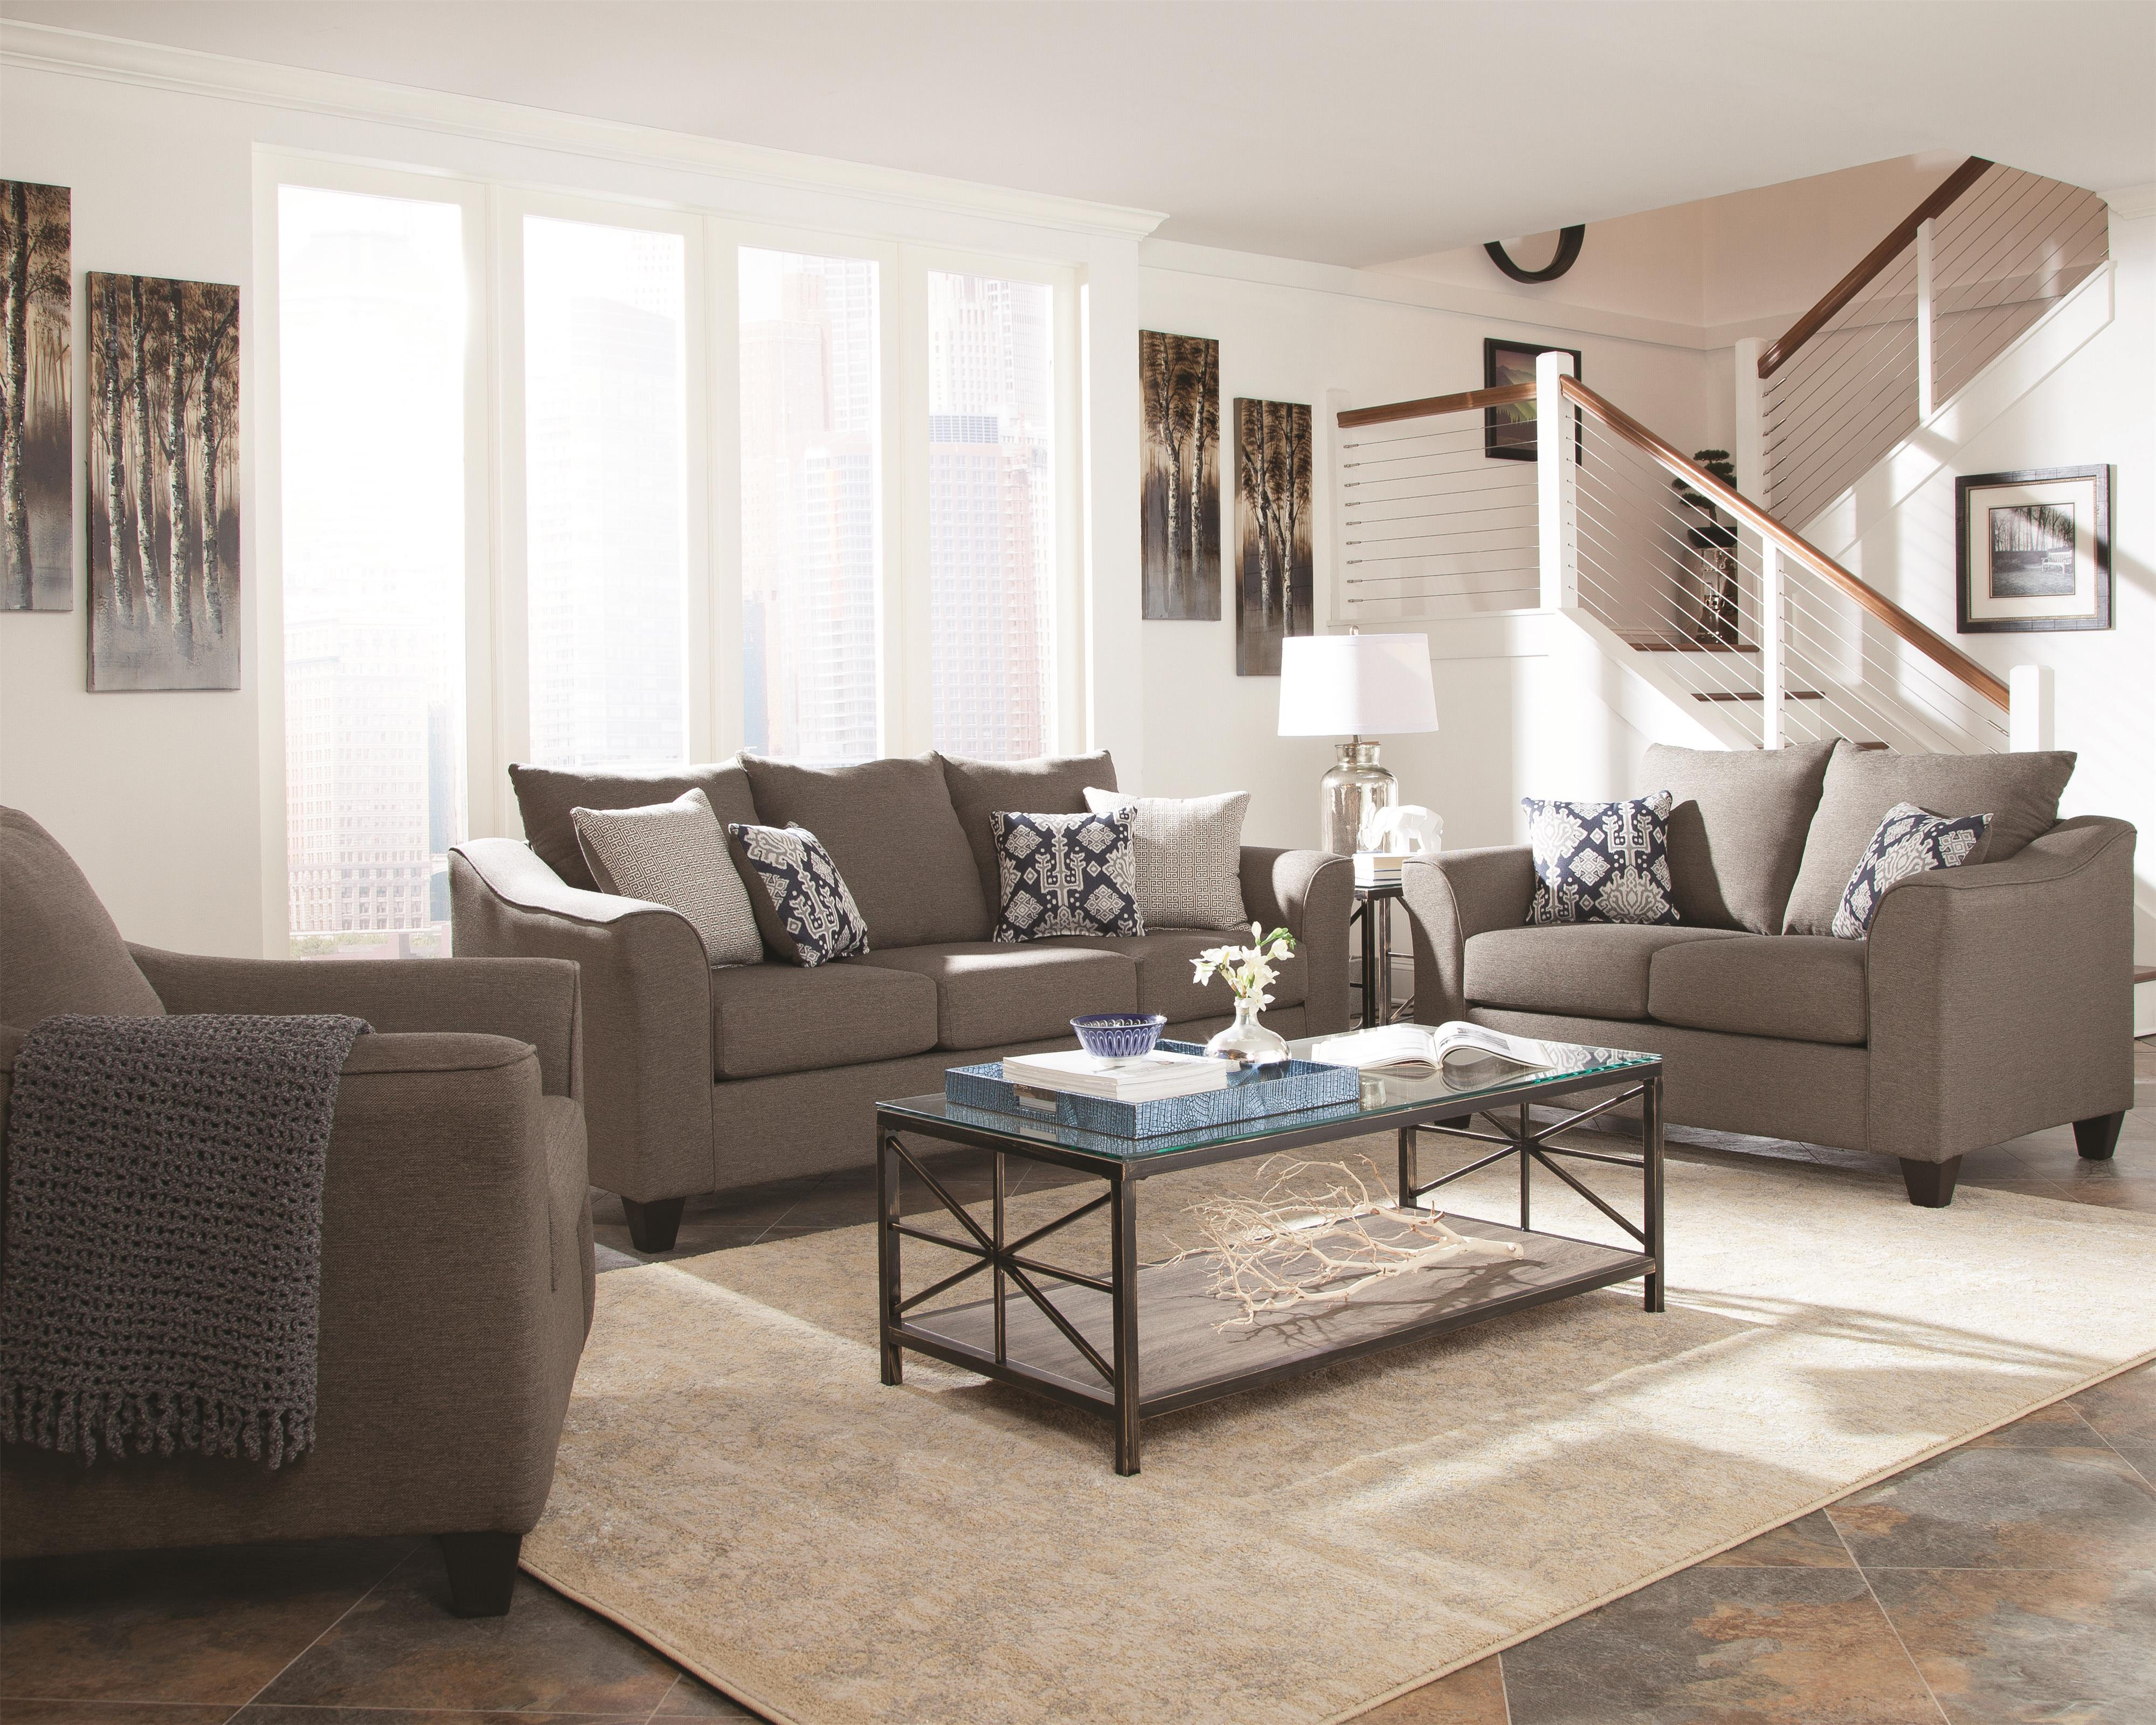 Salizar Living Room Group by Coaster at Rife's Home Furniture